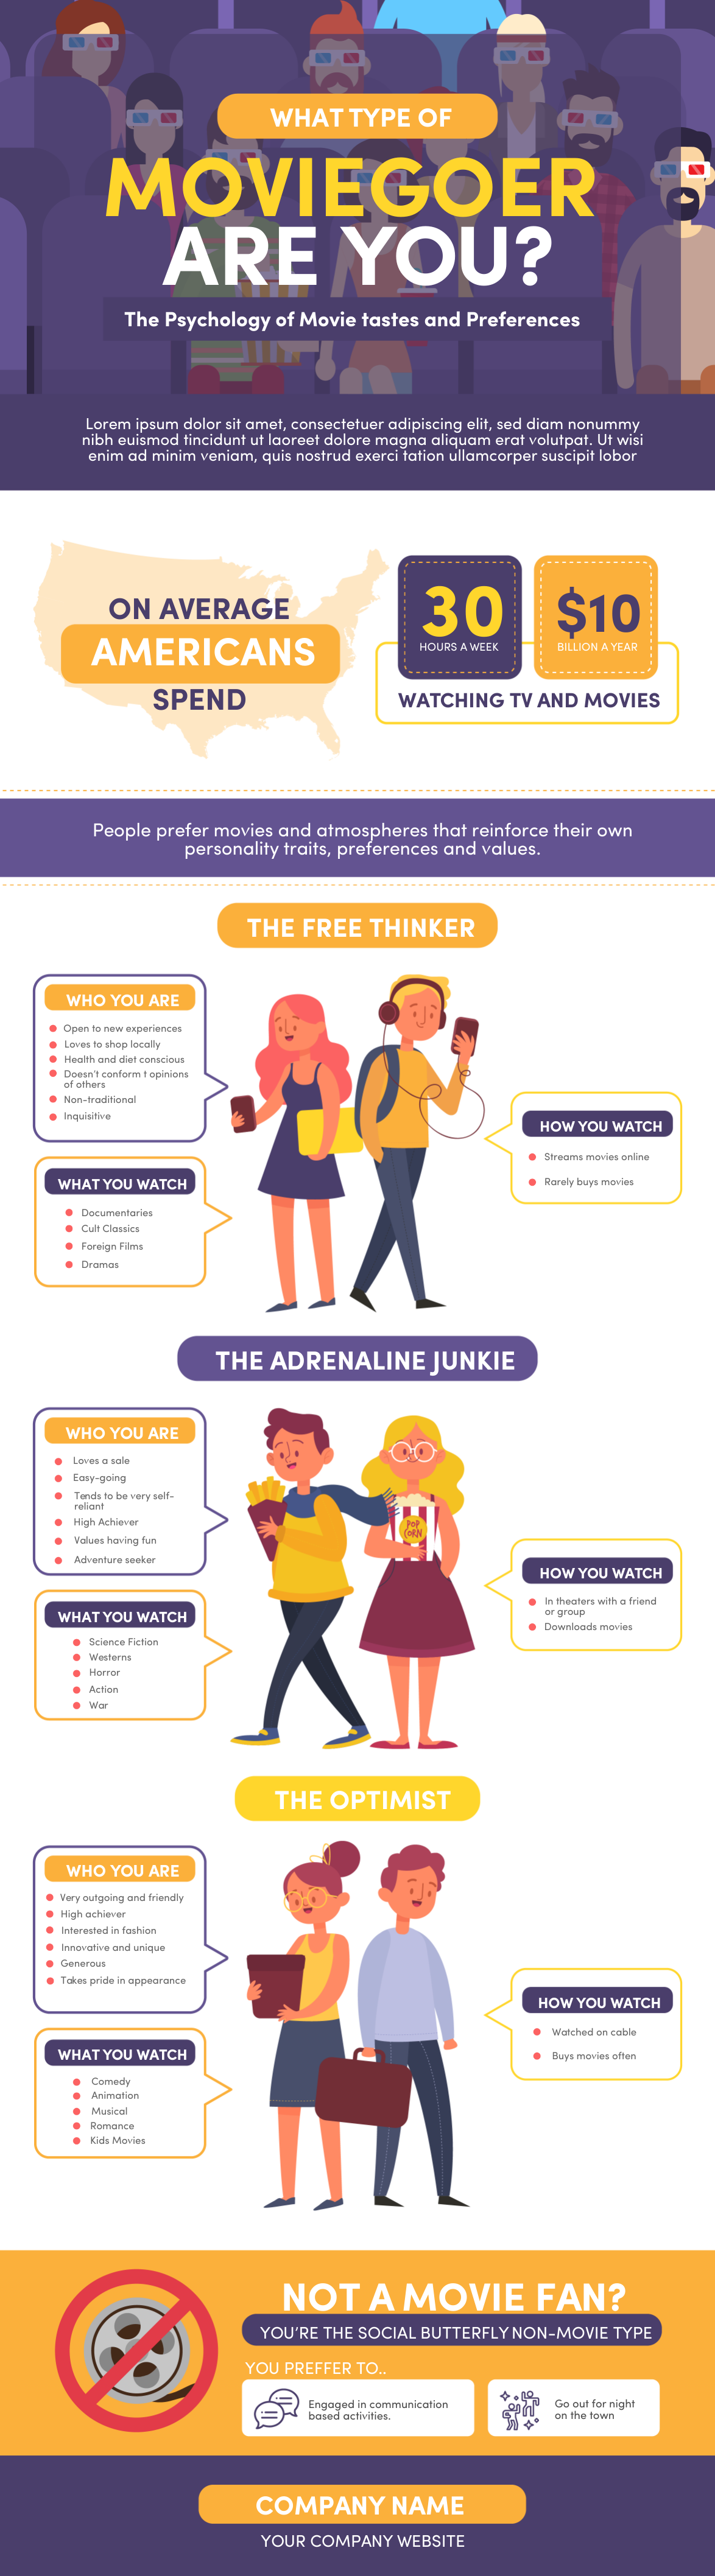 what type of moviegoer are you infographic